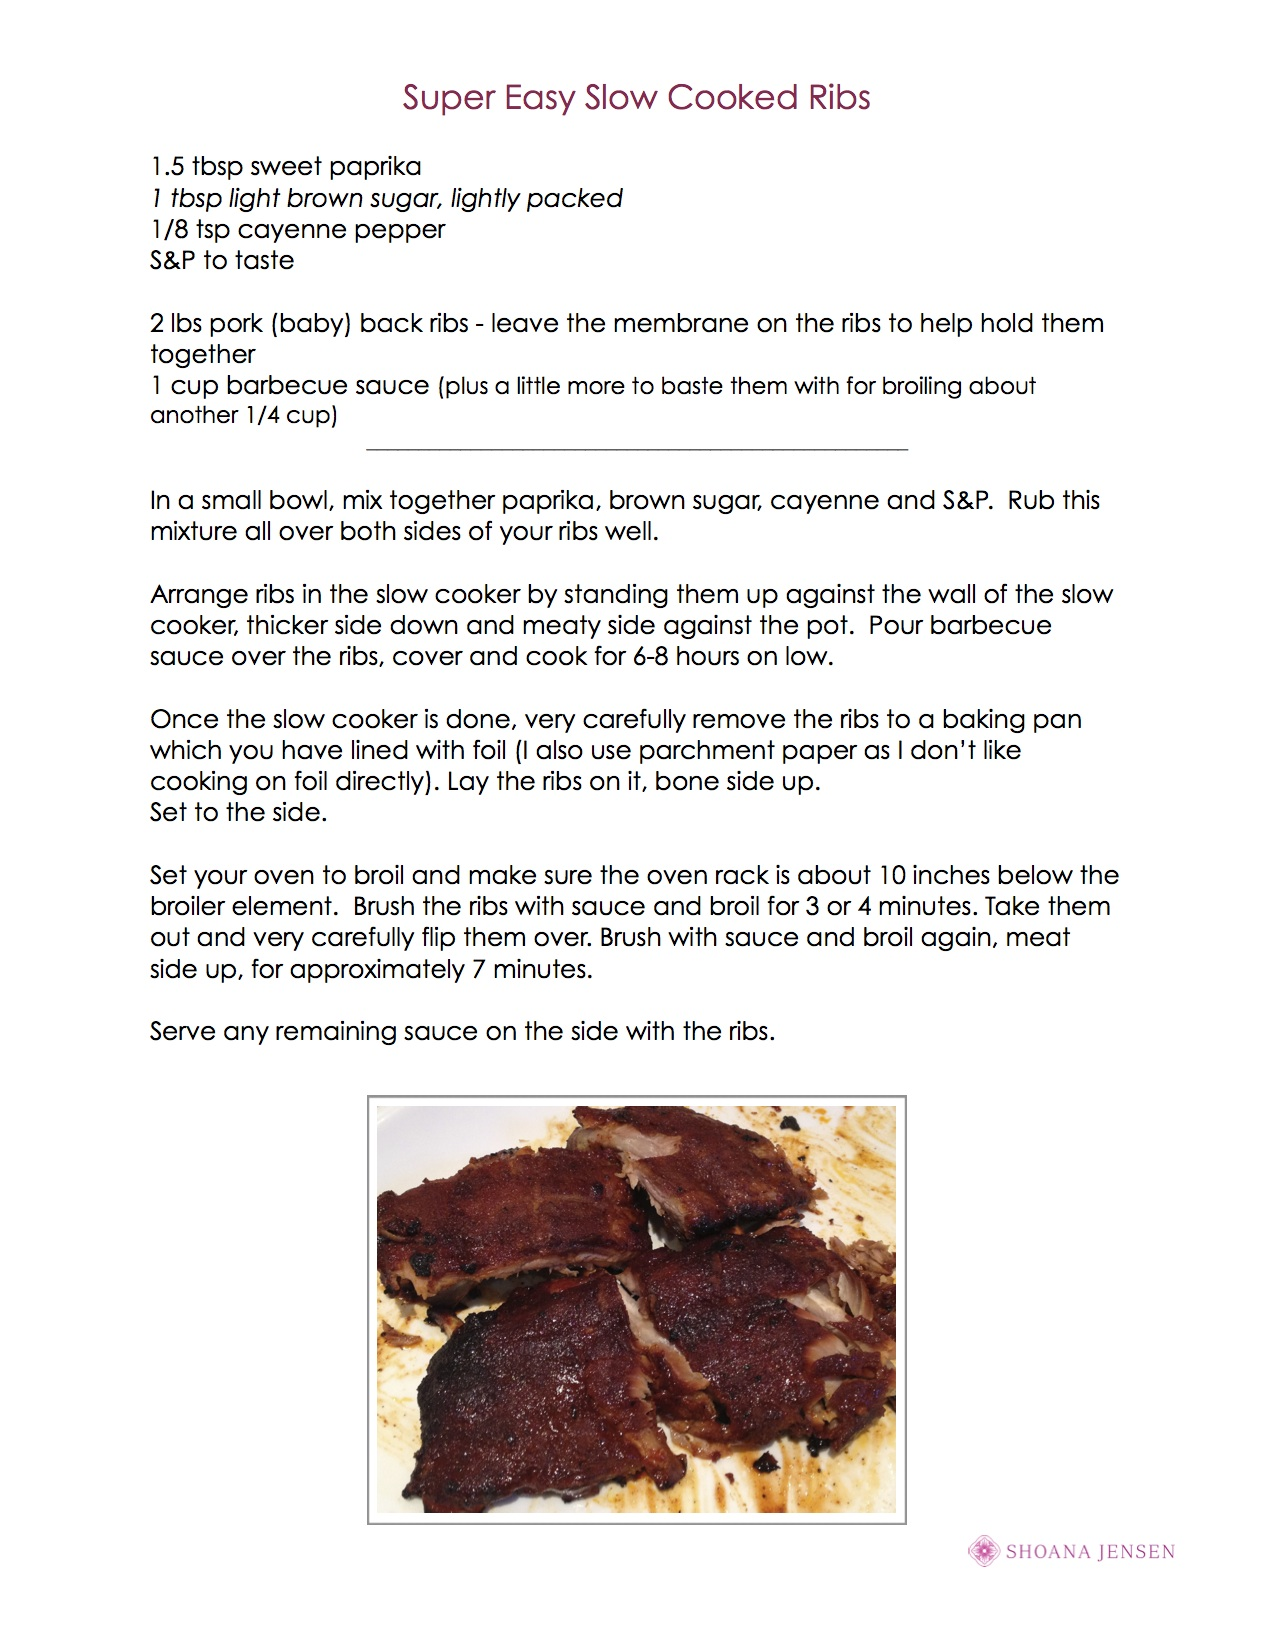 Easy Slow Cooked Barbecued Ribs Image